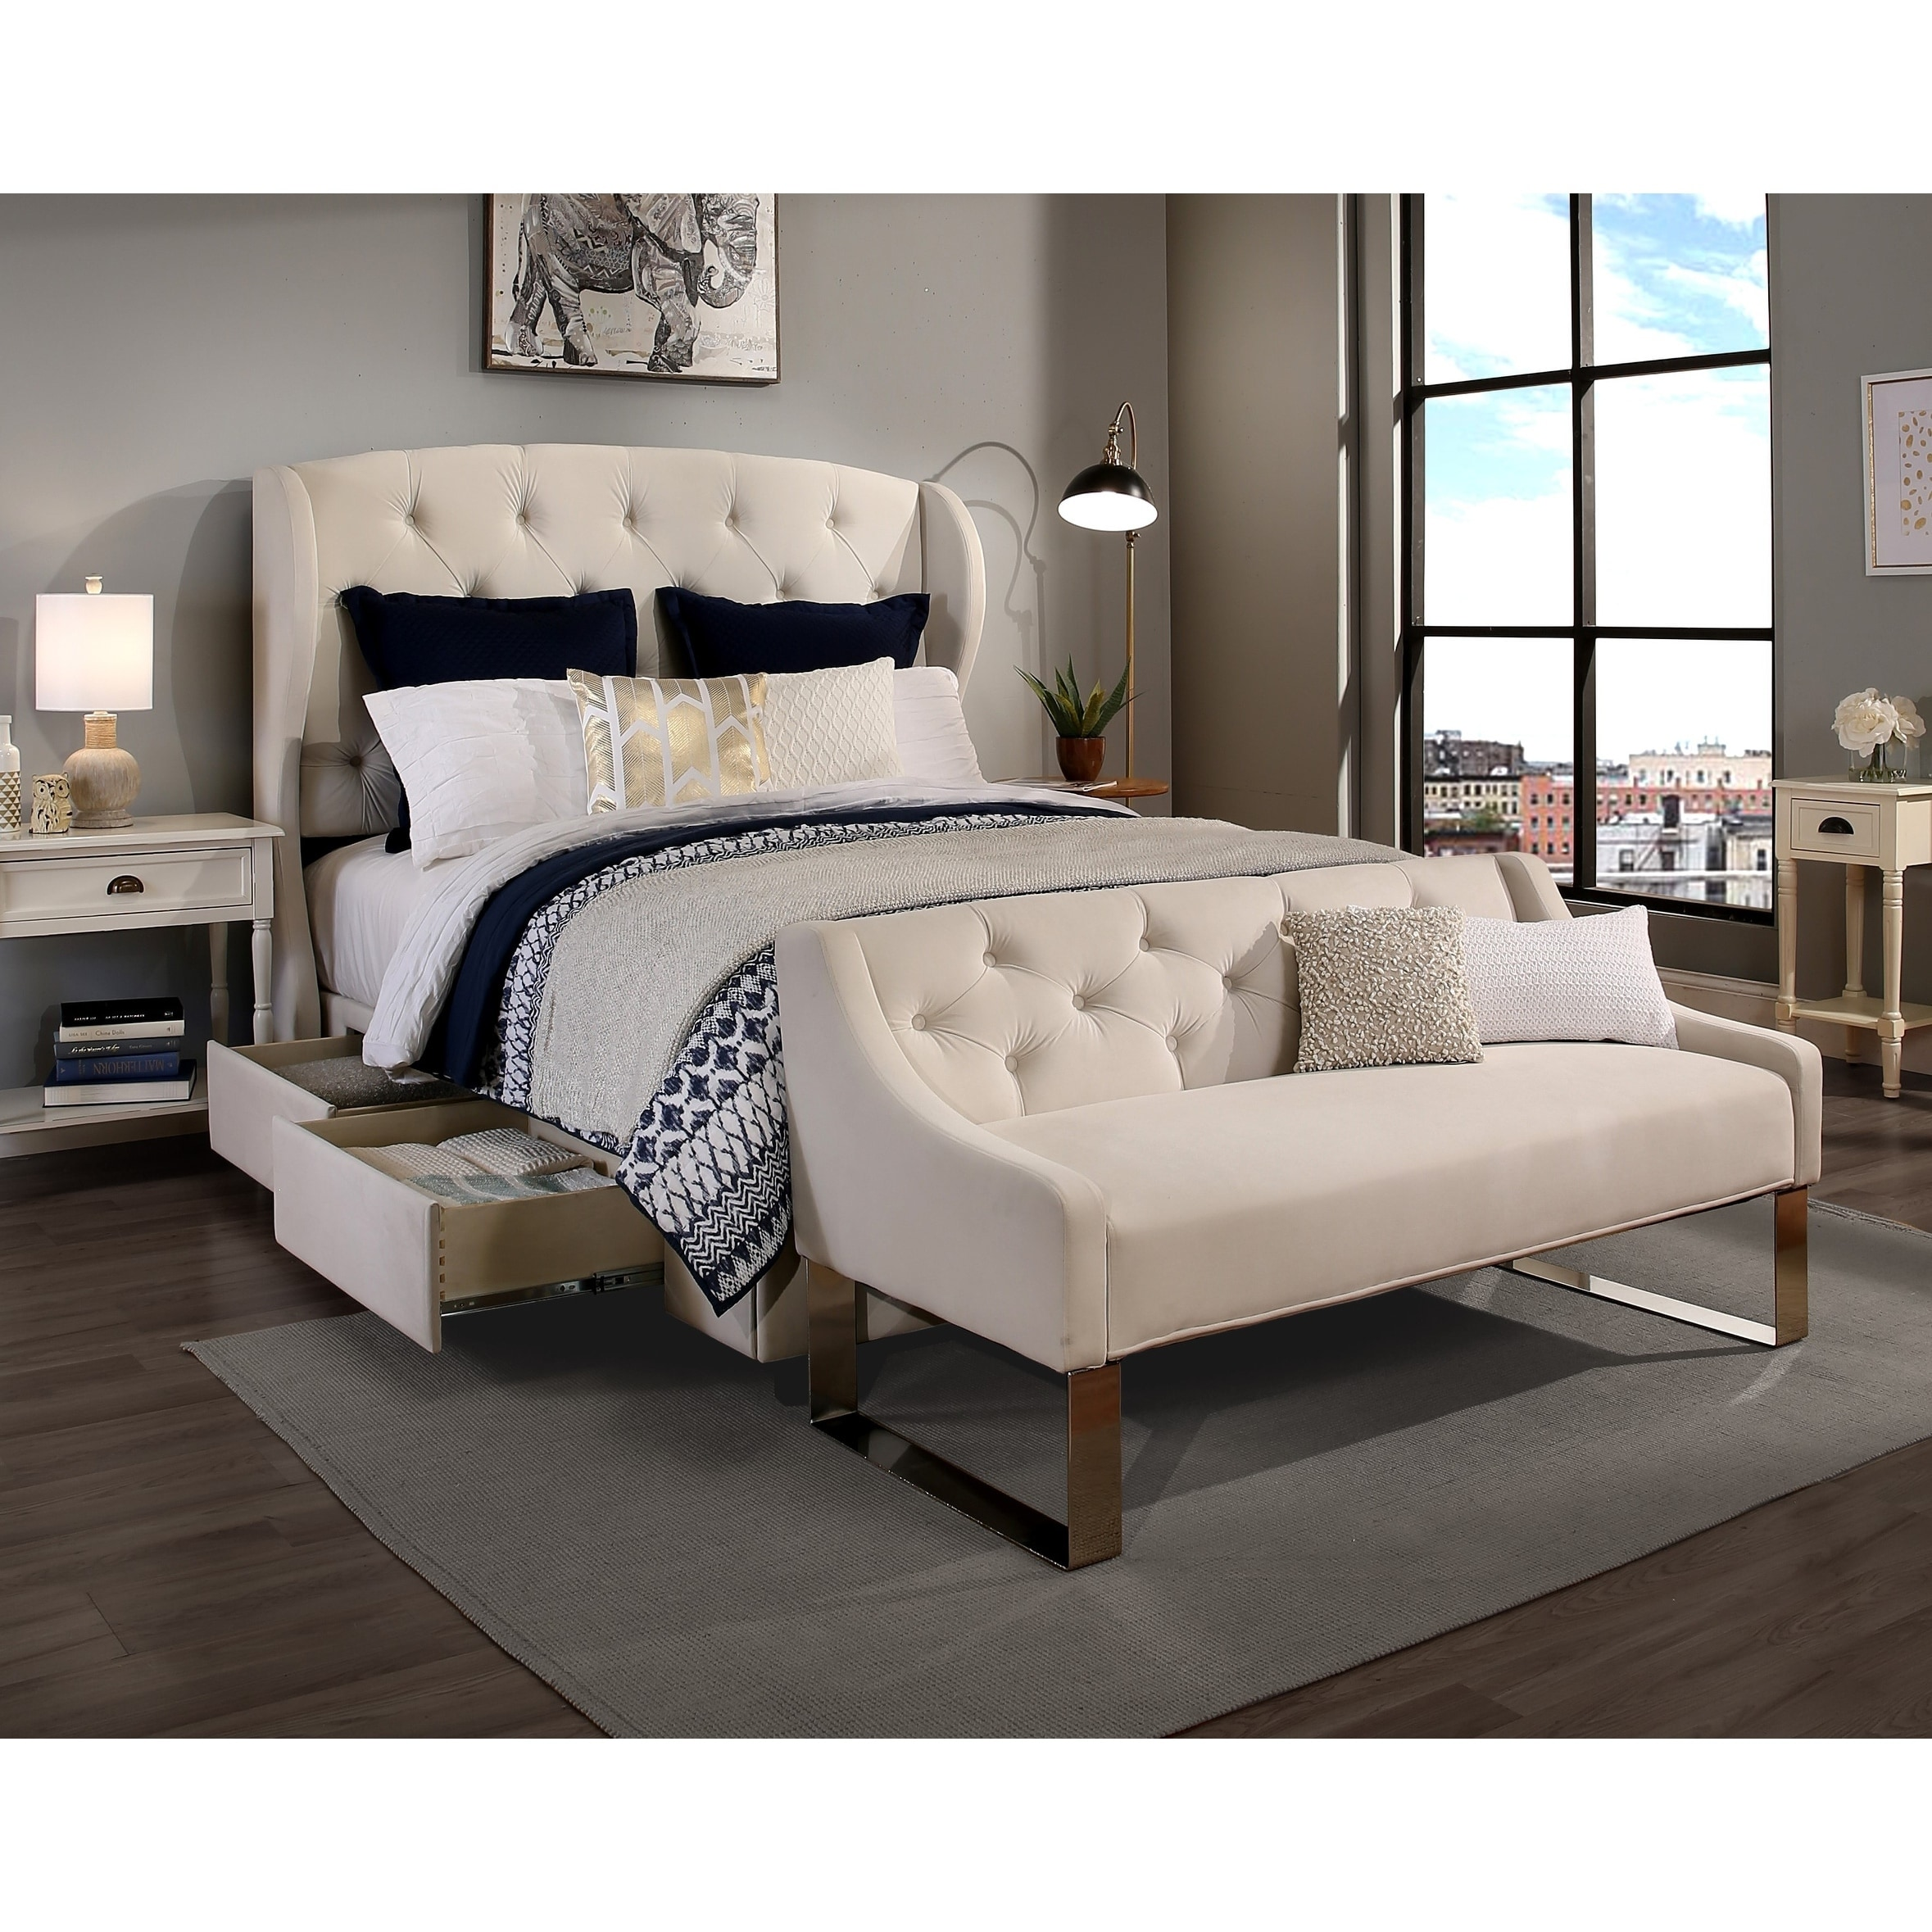 Republic Design House Steel Core Archer Storage Bed With Sofa Bench